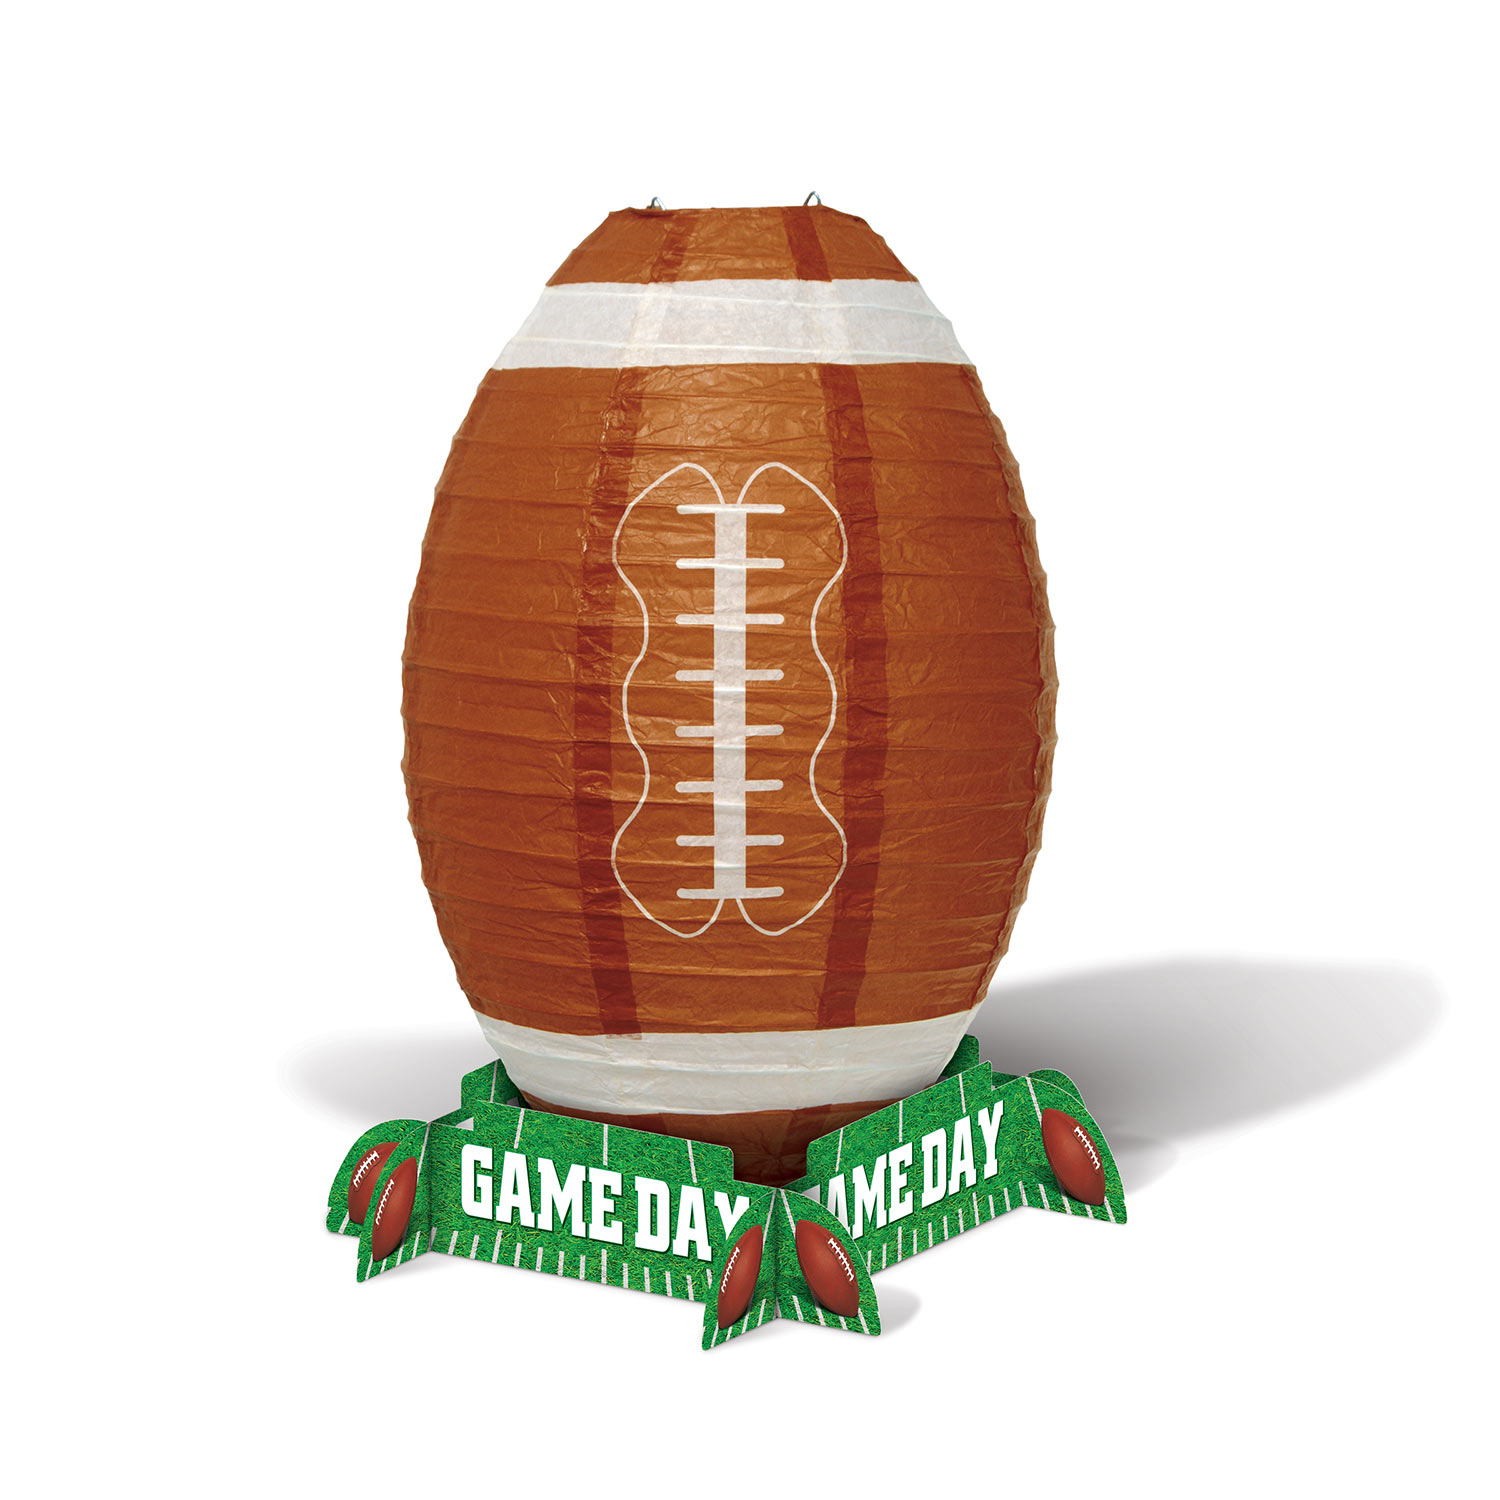 Game Day Football Lantern Centerpiece (Pack of 12) sports, game day, lantern, football, centerpiece